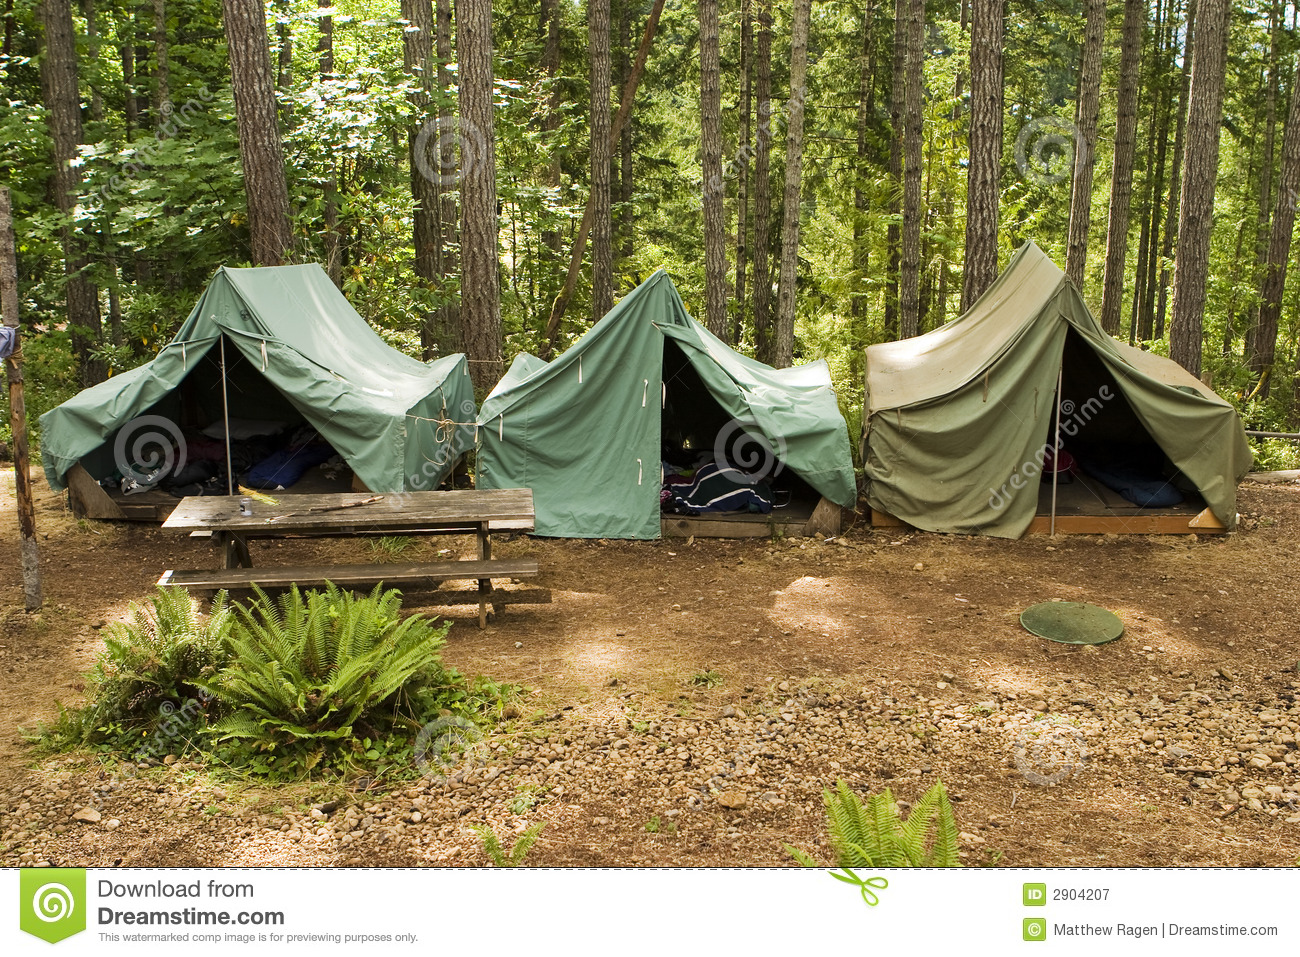 tents at boy scout camp stock image image of parsons 2904207. Black Bedroom Furniture Sets. Home Design Ideas